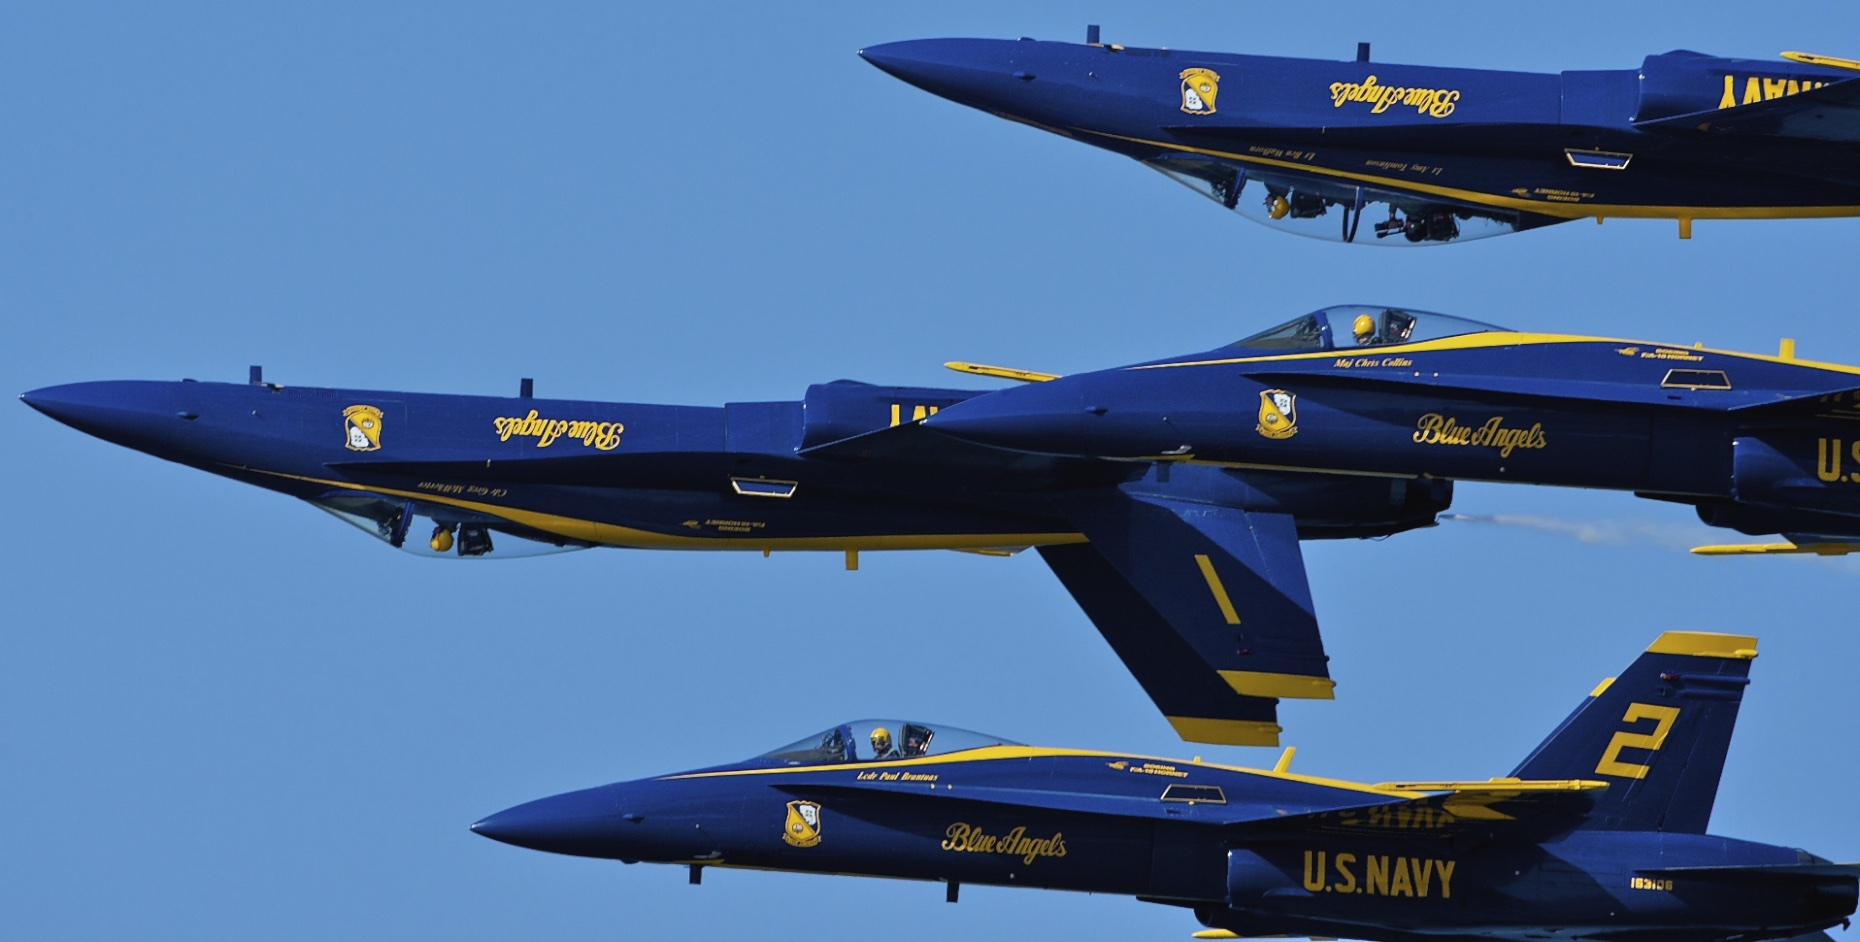 US Navy Blue Angels F-18 Hornets